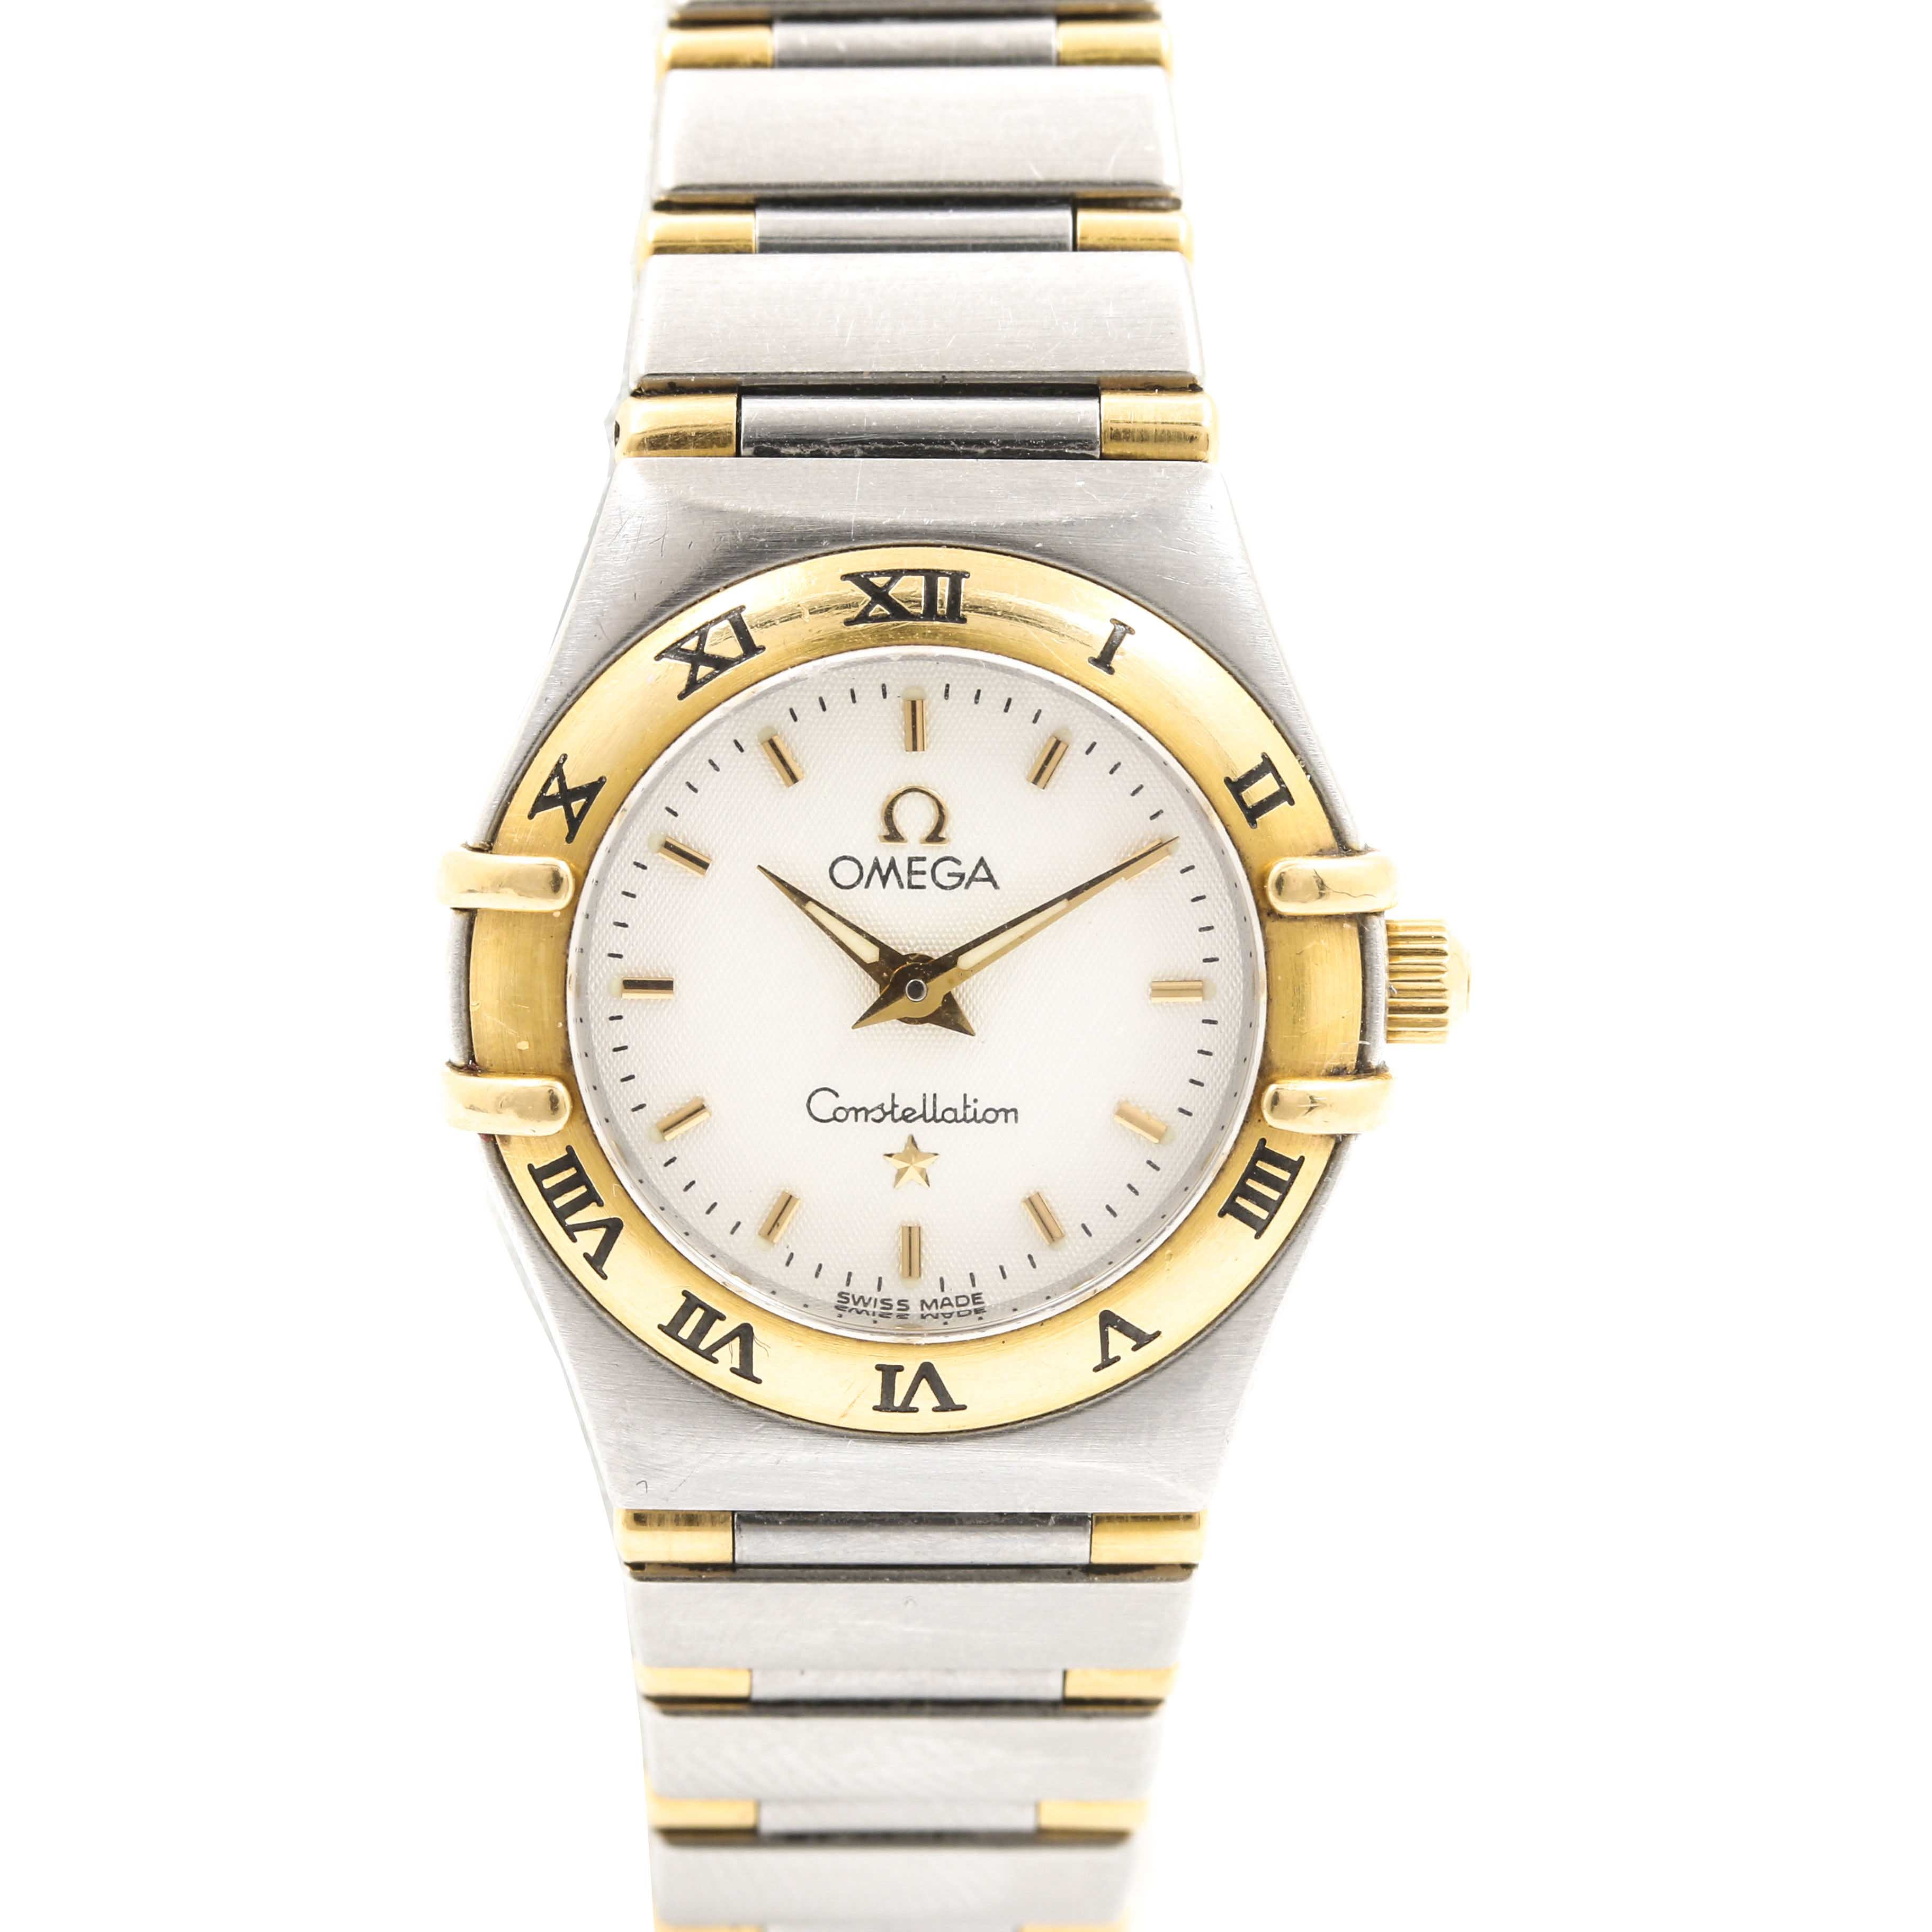 Omega Constellation 18K Yellow Gold and Stainless Steel Wristwatch